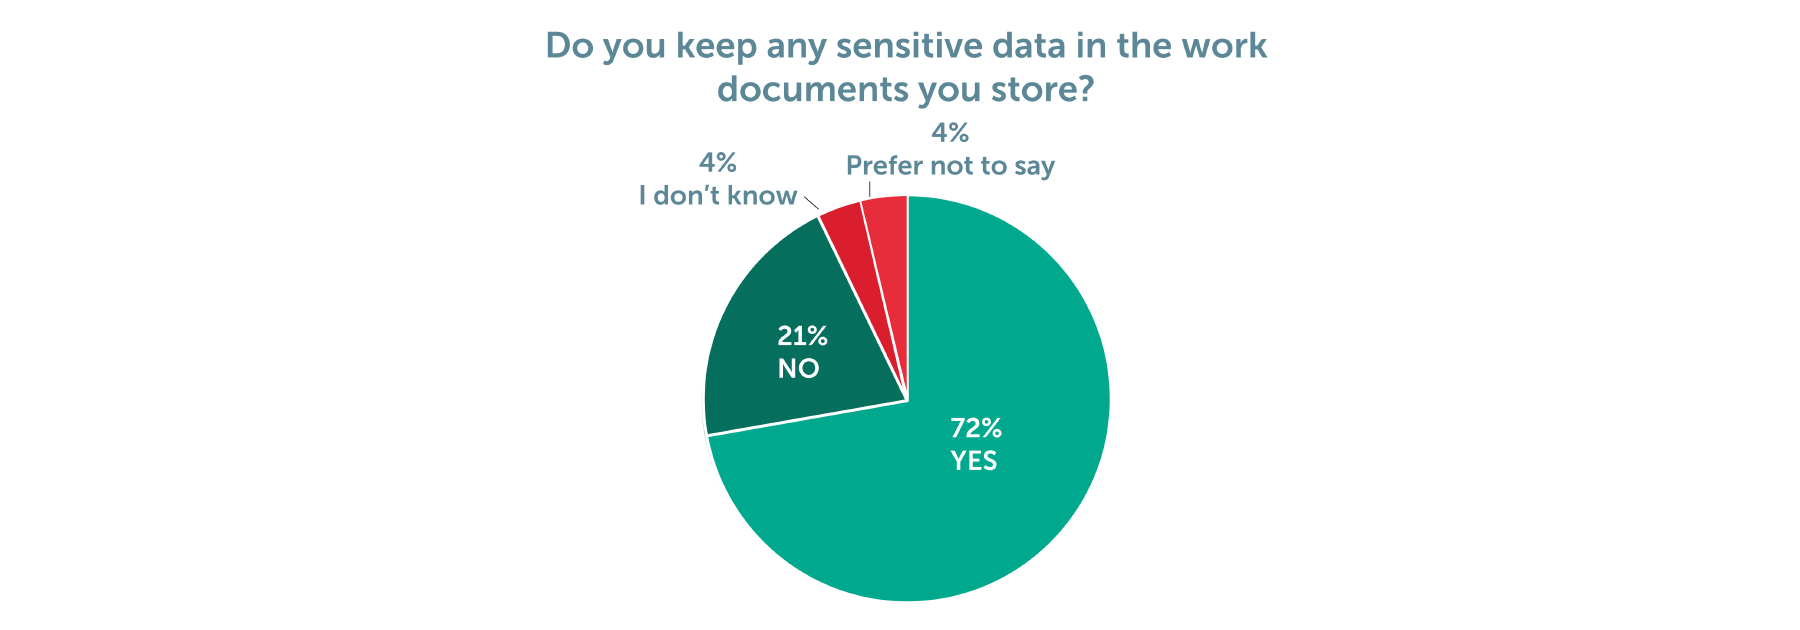 Figure 3: Do any of the work documents you store contain personally identifiable or sensitive data in? (i.e. names, addresses, email addresses, dates of birth, financial information) (Chart 3)